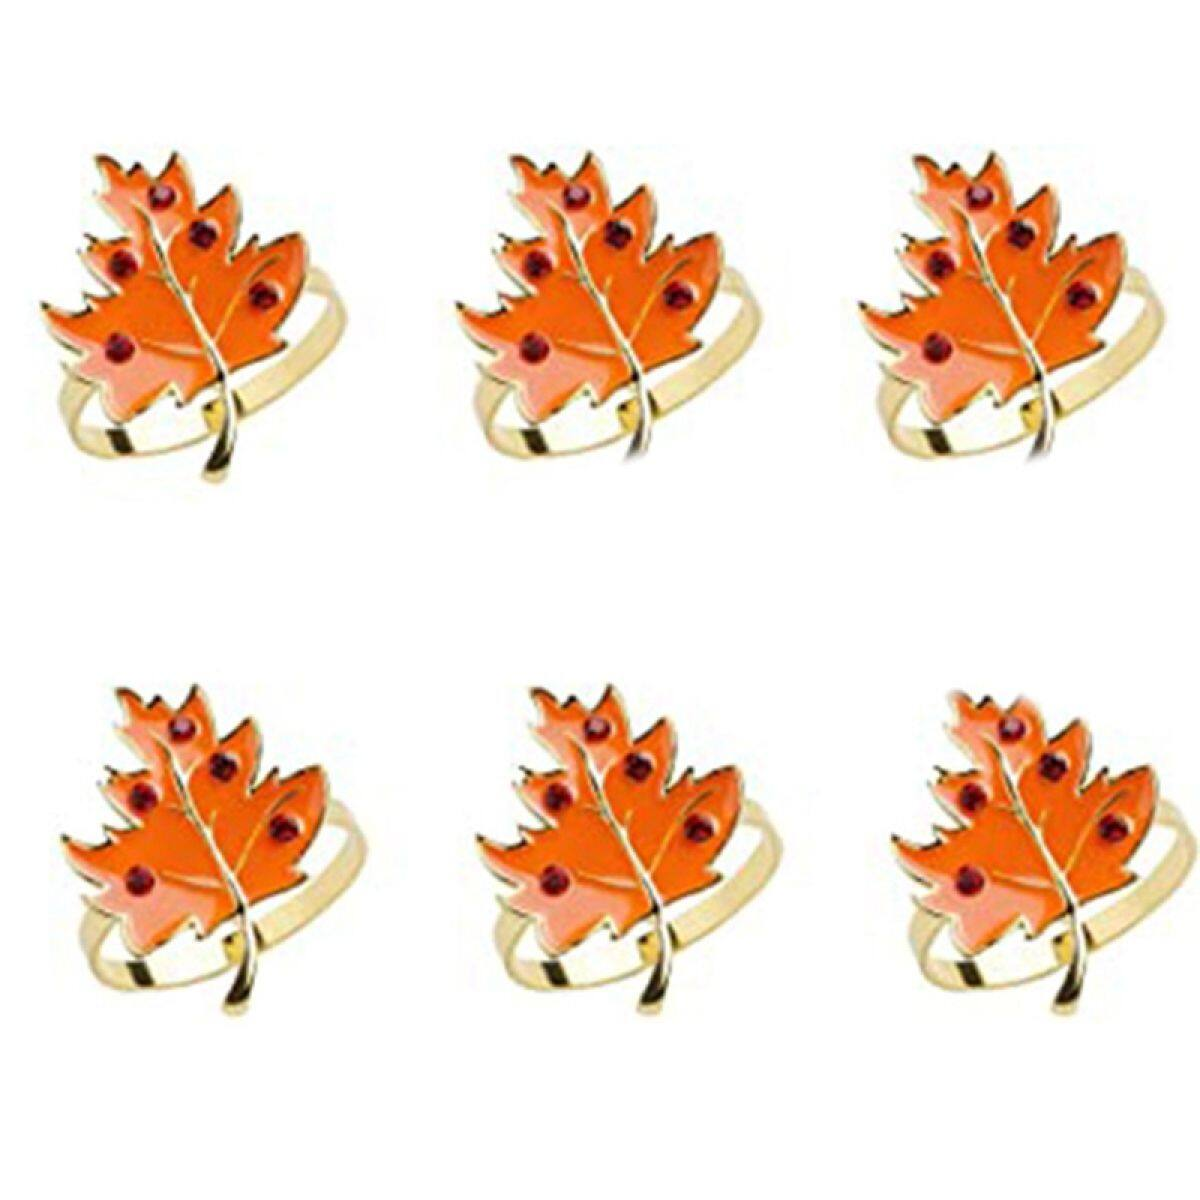 6pcs Napkin Rings Golden Holder Rings Designed With Orange Maple Harvest Farmhouse Style For Thanksgiving Day Holiday Lazada